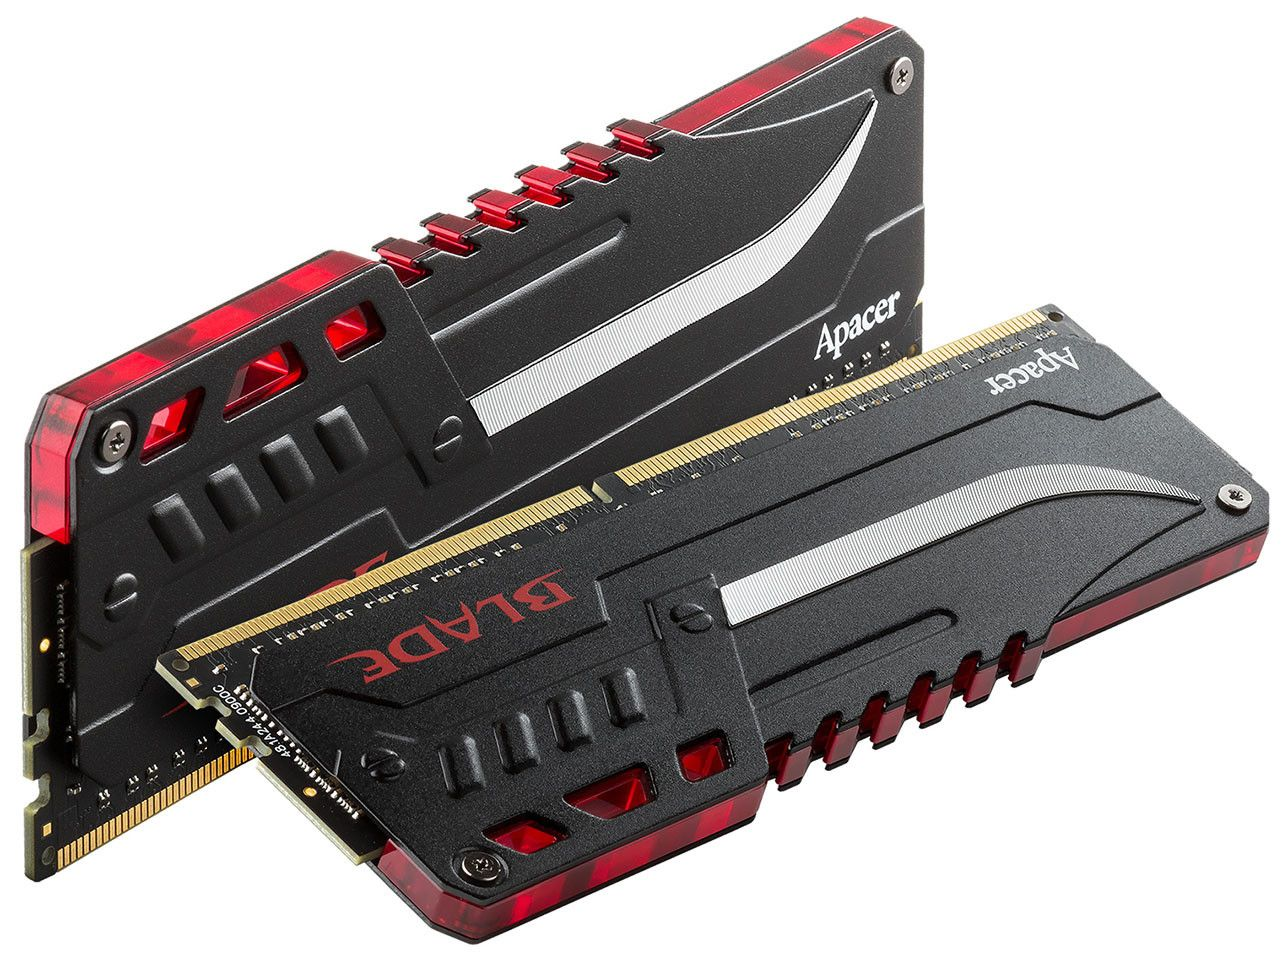 Apacer Announces the Blade Fire DDR4-3200 32GB Memory - TECKKNOW